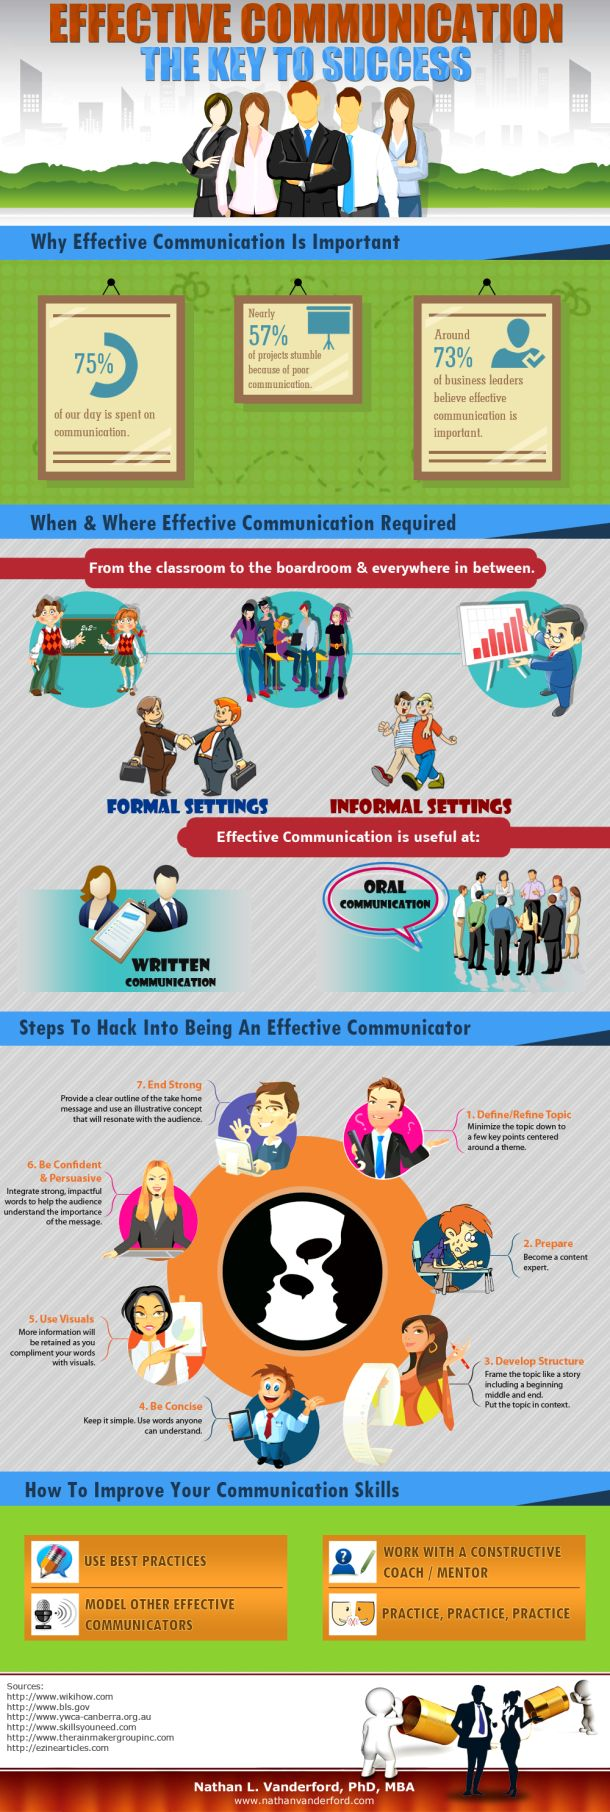 best ideas about effective communication skills effective communication the key to success infographic